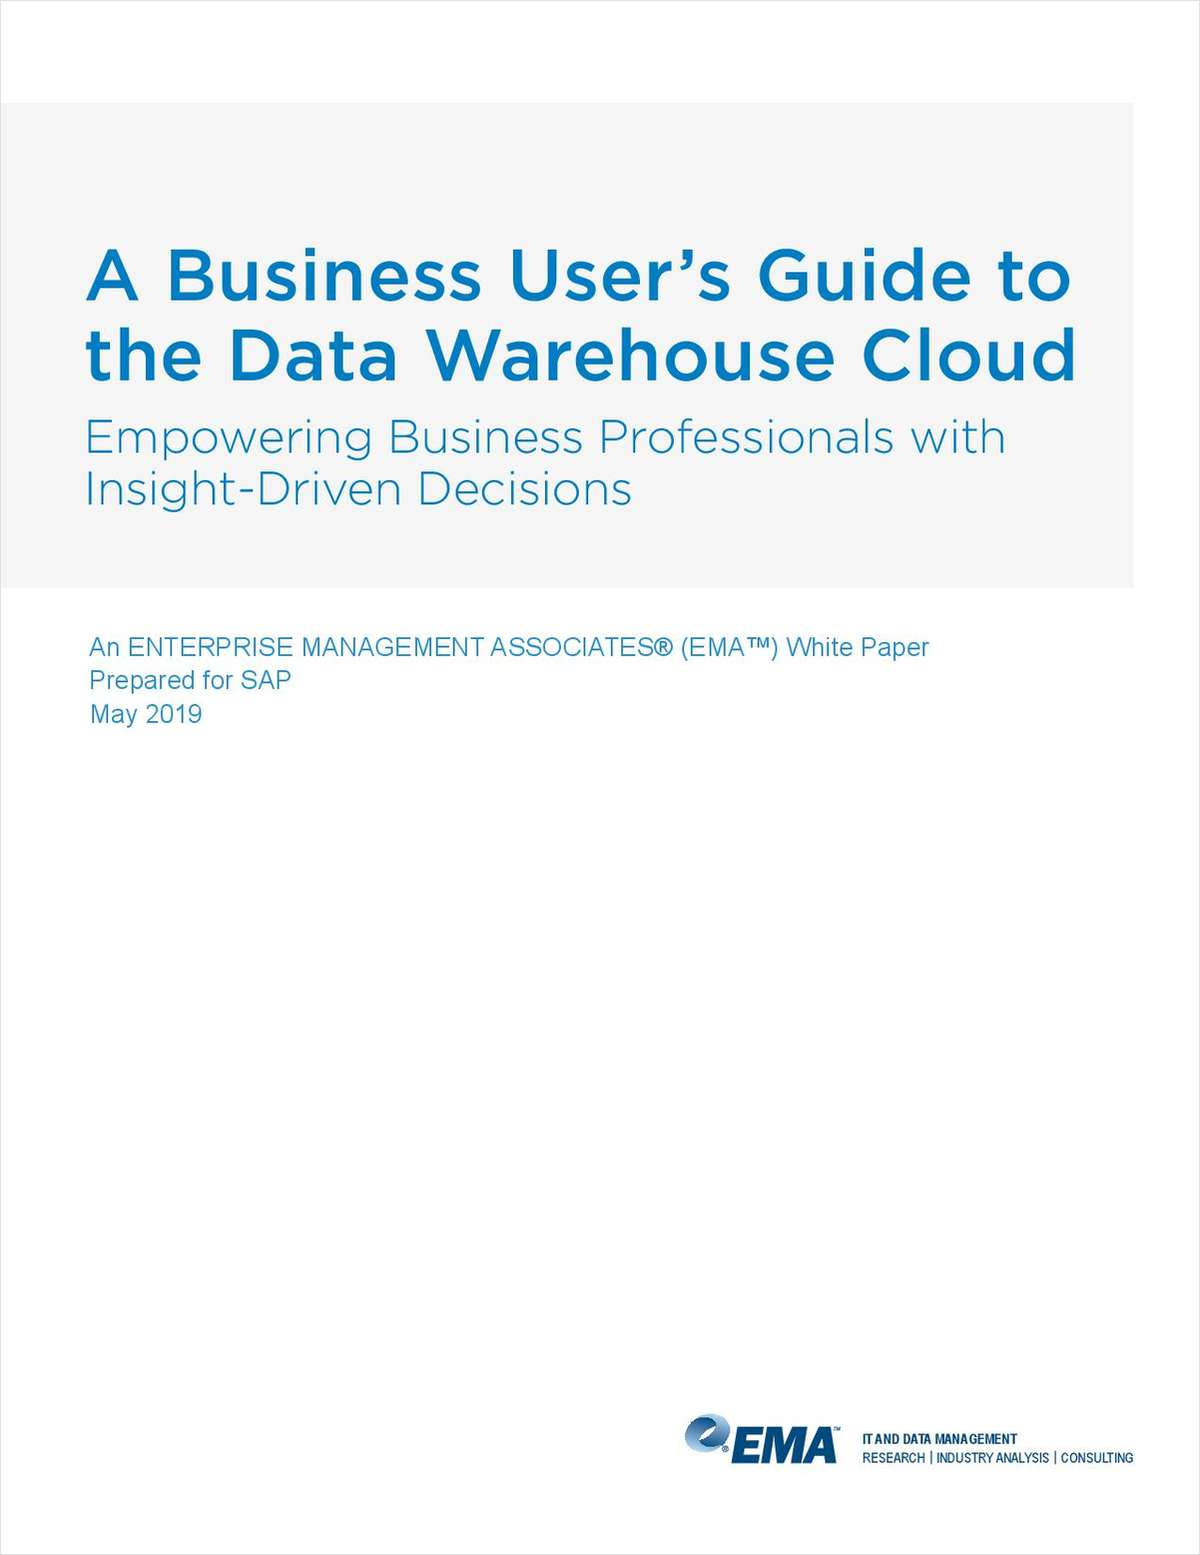 A Business User's Guide to Data Warehouse Cloud